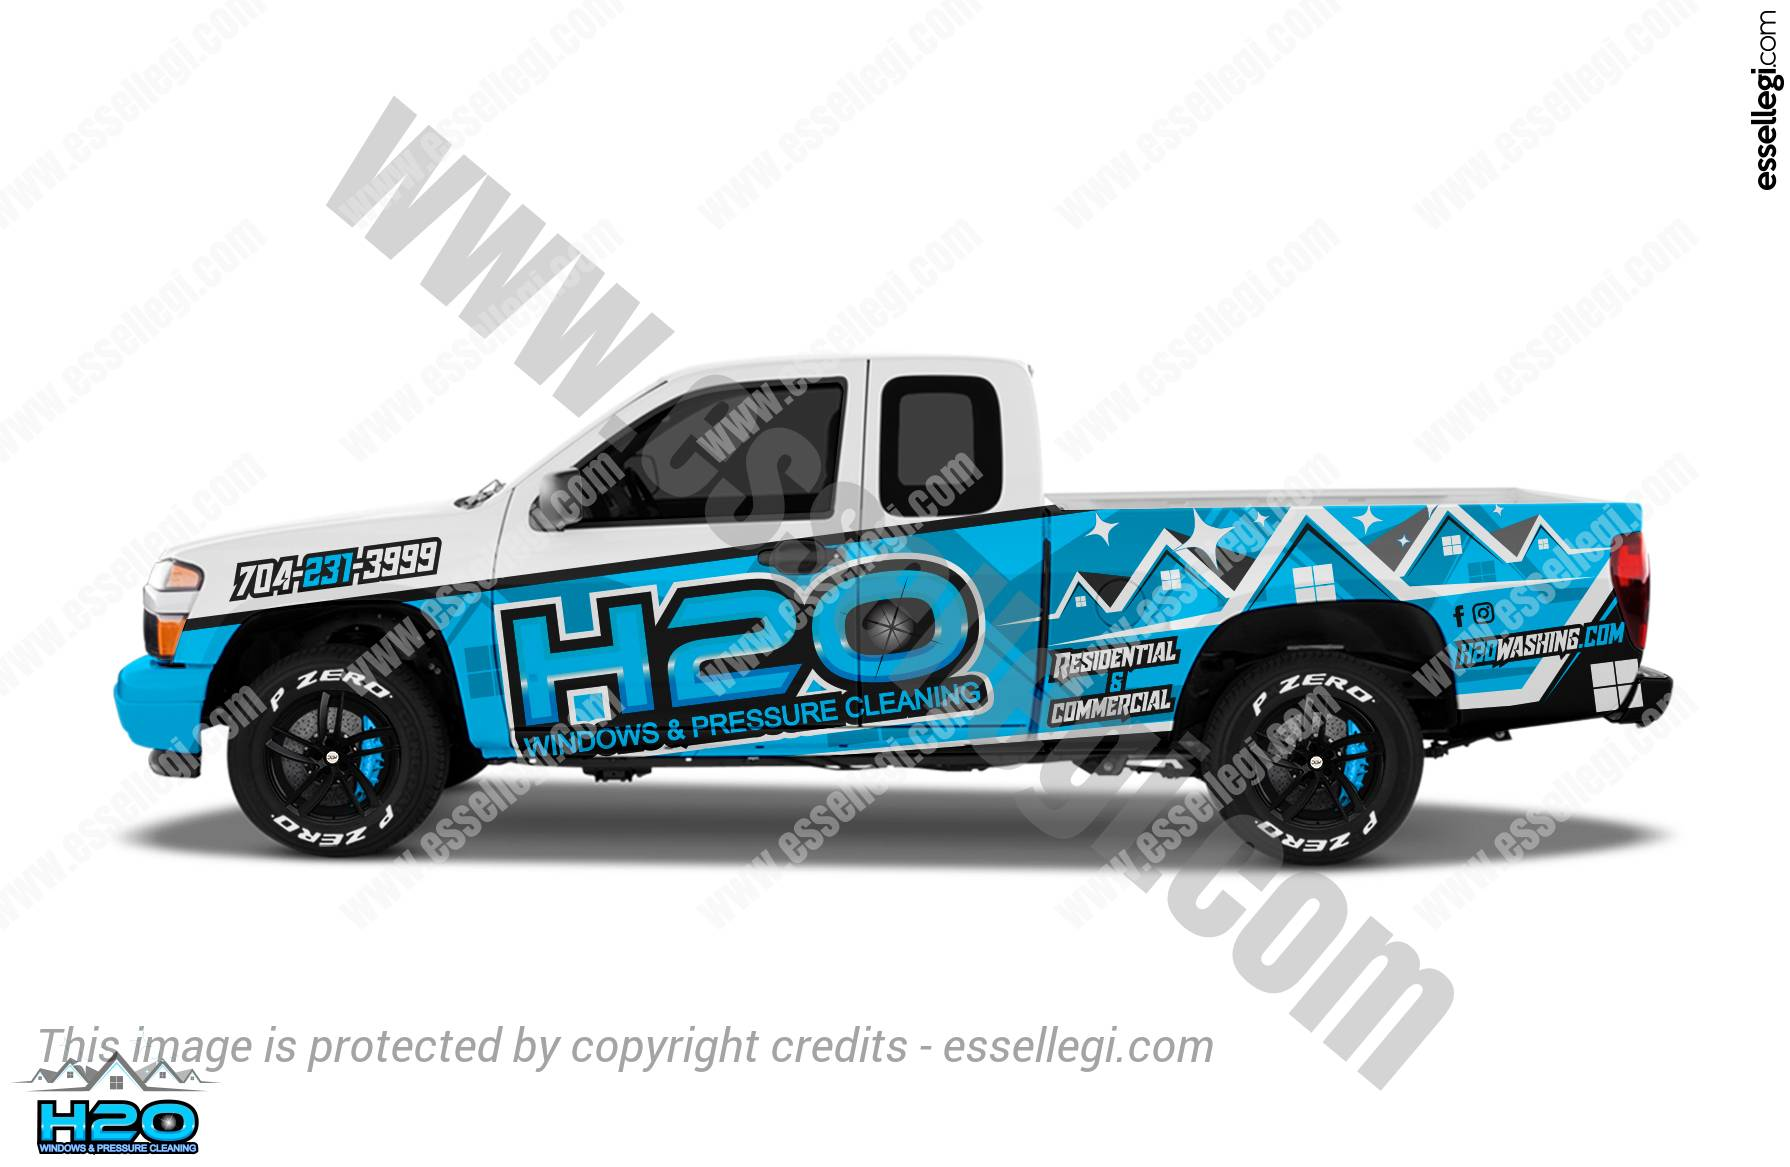 Chevy Colorado Wrap. Chevy Colorado | Truck Wrap Design by Essellegi. Chevy Truck, Chevy Trucks, Truck Wrap, Truck Wraps, Wrap Design, Vehicle Signage, Vehicle Wrap, Truck Signs, Vinyl Wrap, Truck Graphics, Vehicle Signs Vehicle Wraps, Vehicle Graphics, Truck Wrapping, Vehicle Wrapping Wrapped, Custom Wraps, Custom Graphics, Vinyl Wraps, Full Wrap Wrap Advertising, Commercial Wraps, Custom Design by Essellegi.